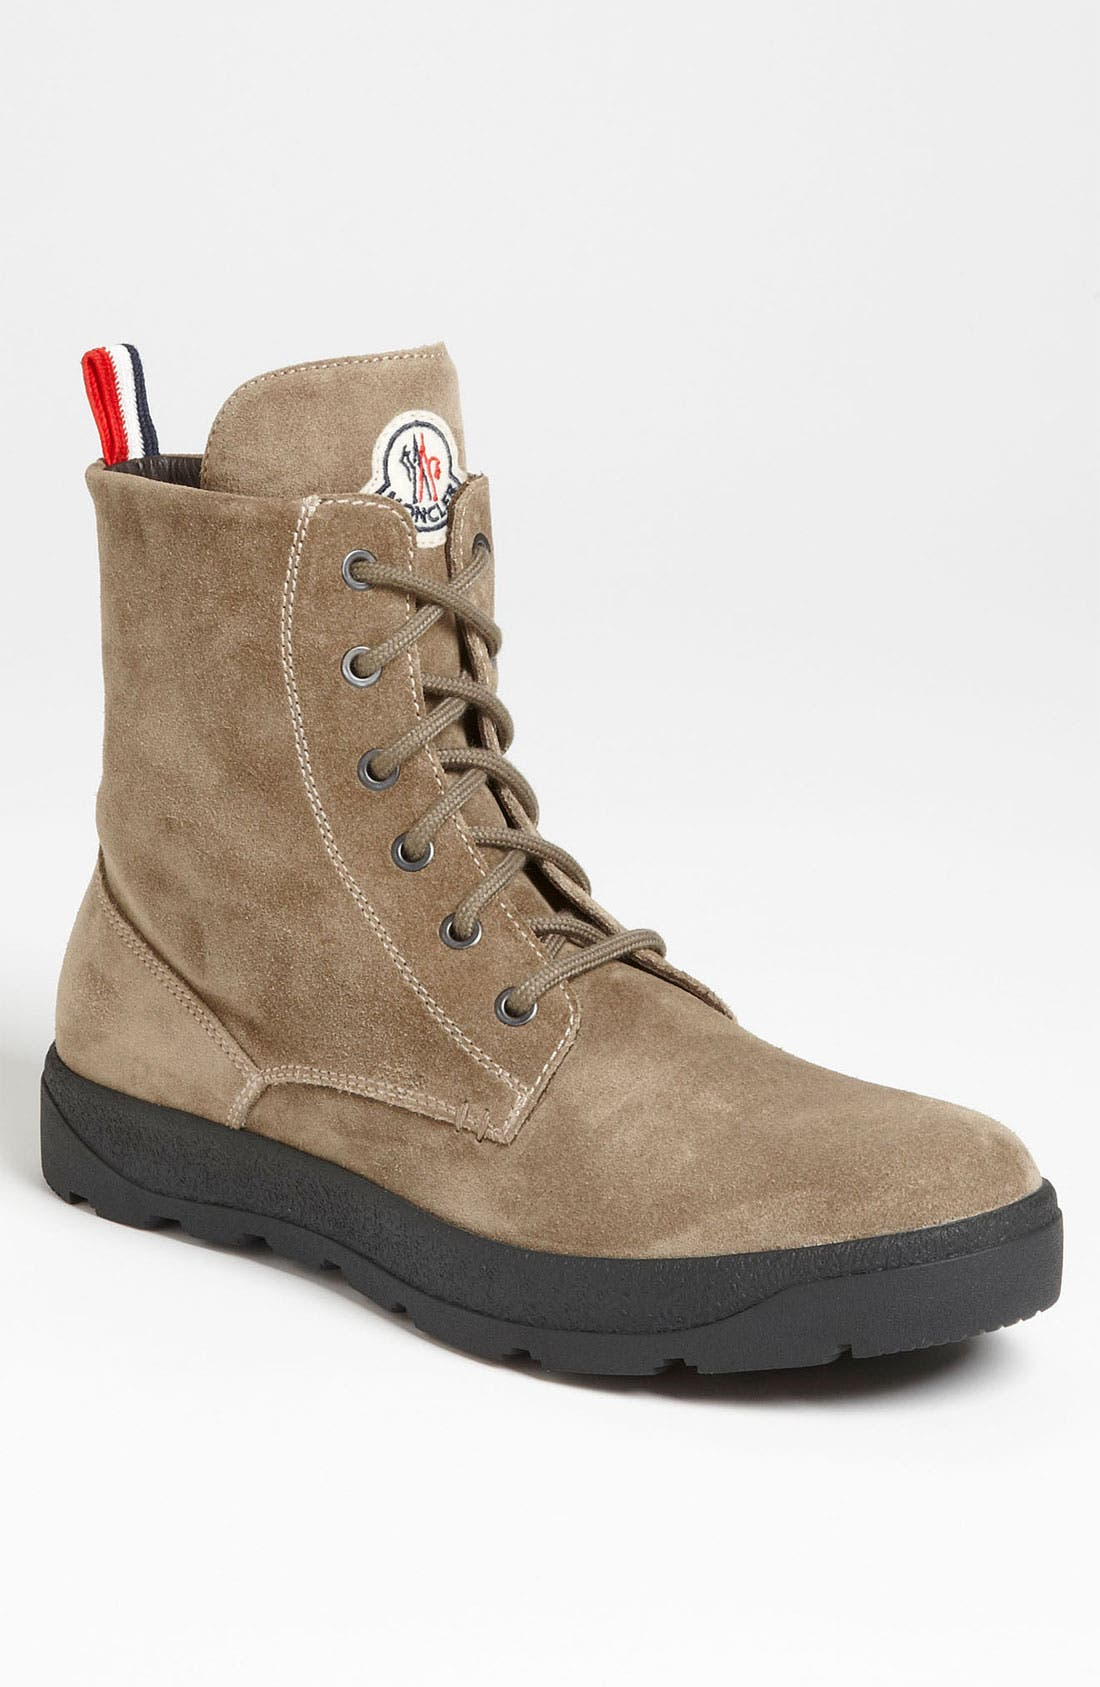 Main Image - Moncler 'Park' Suede Boot